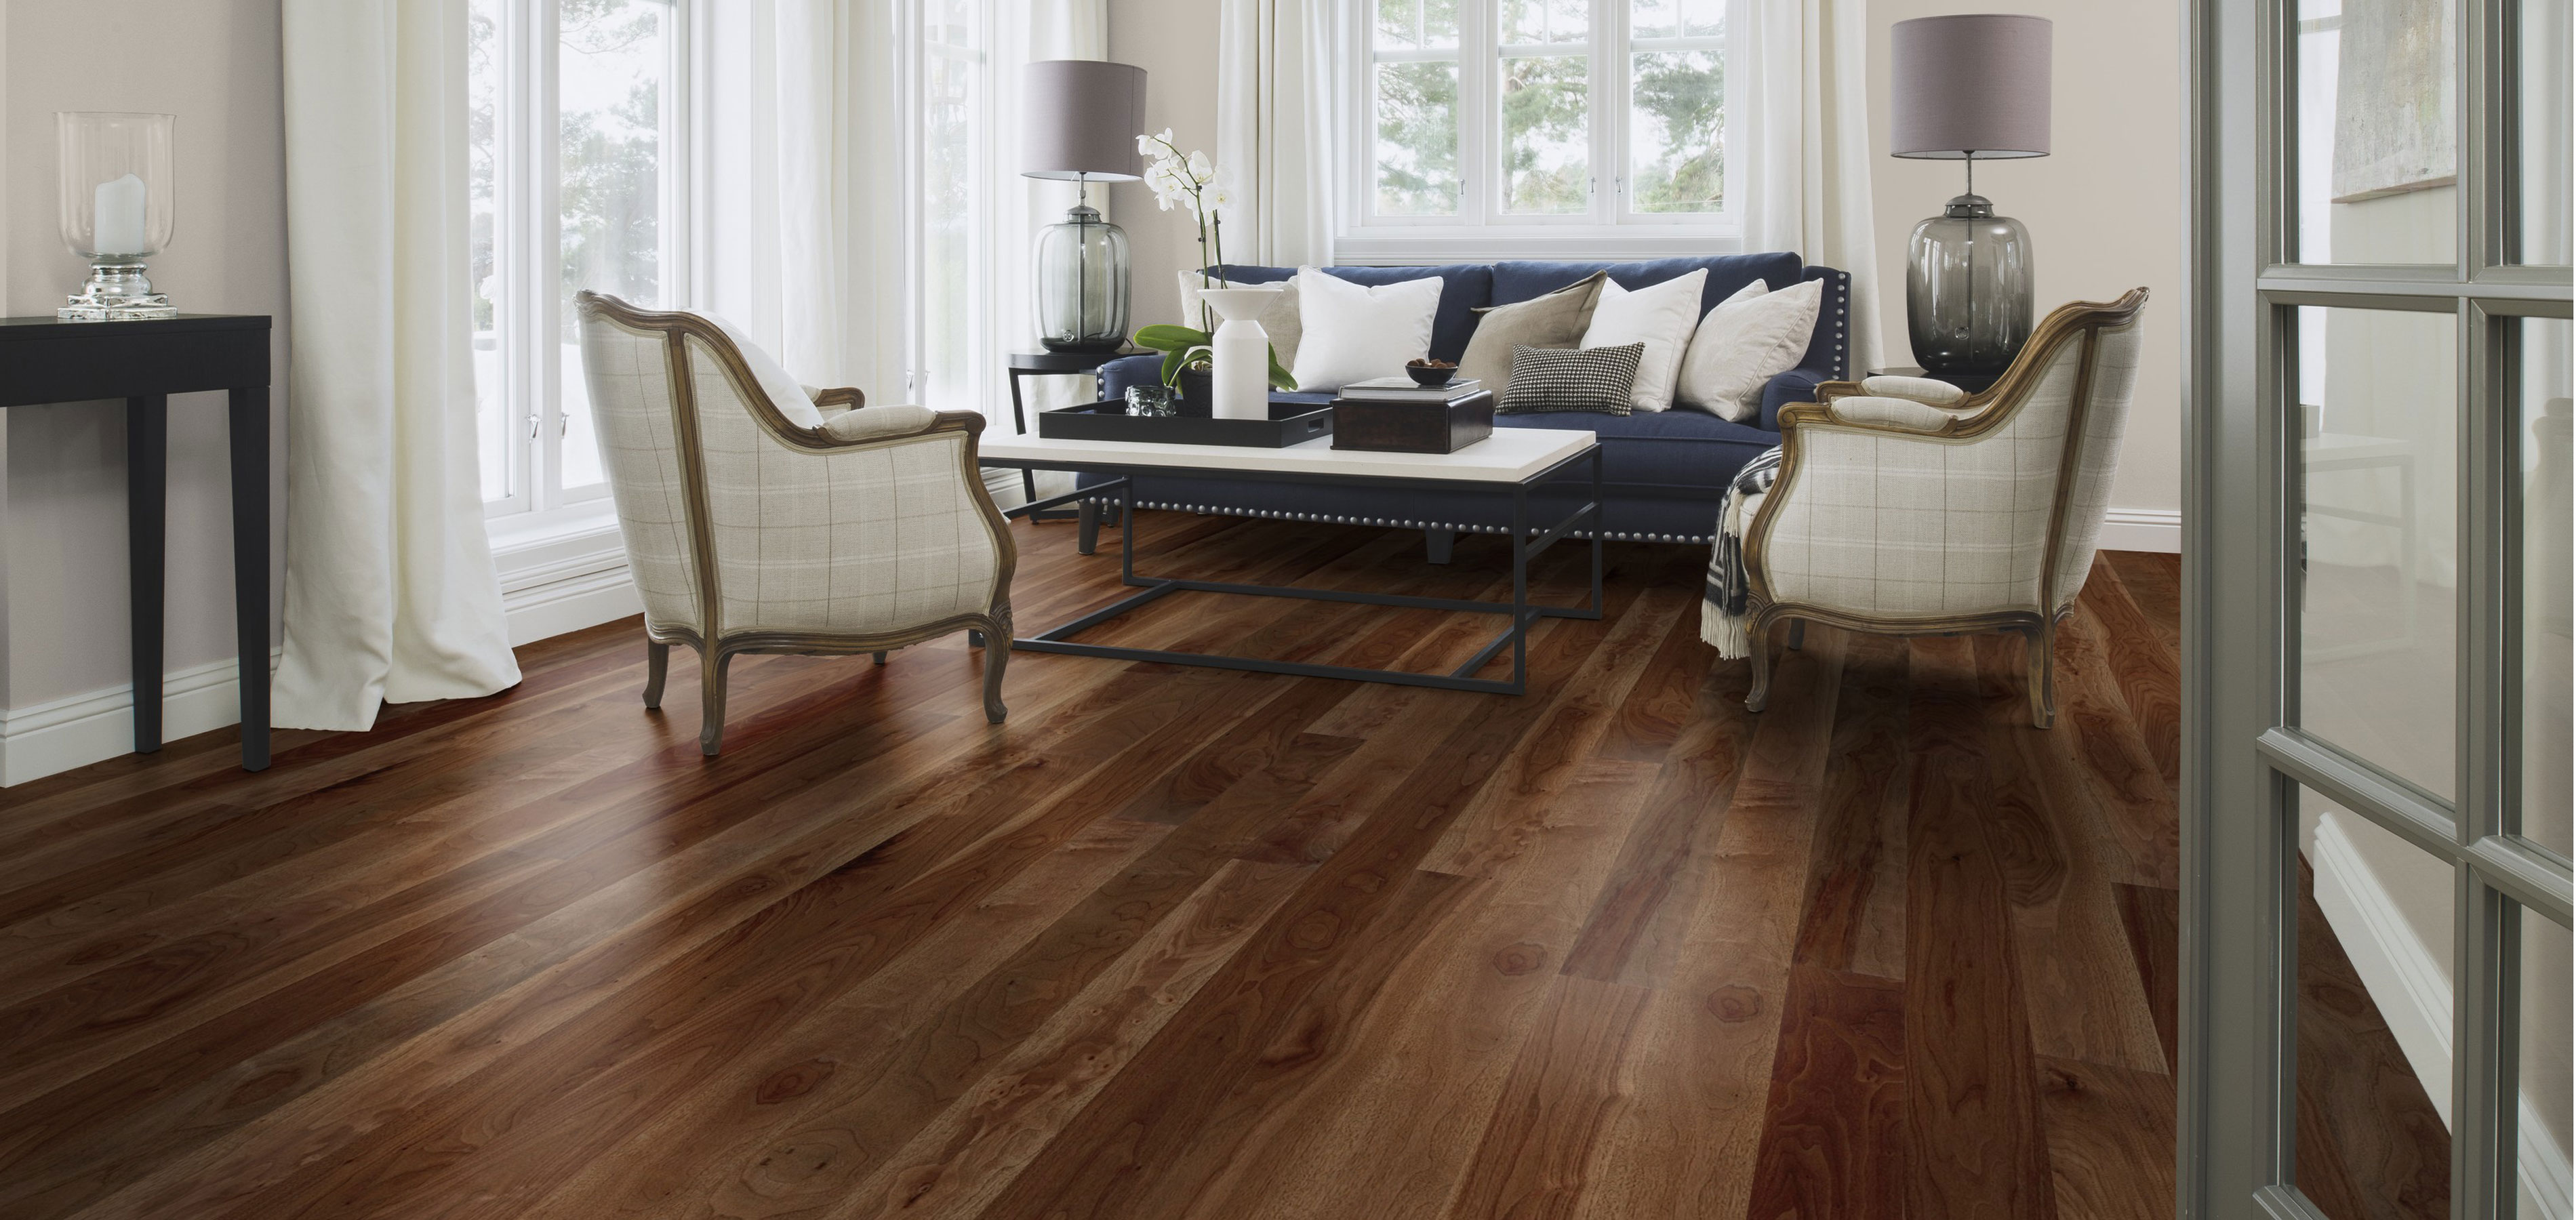 Boen flooring walnut andante plank wood flooring store for Hardwood floors on sale